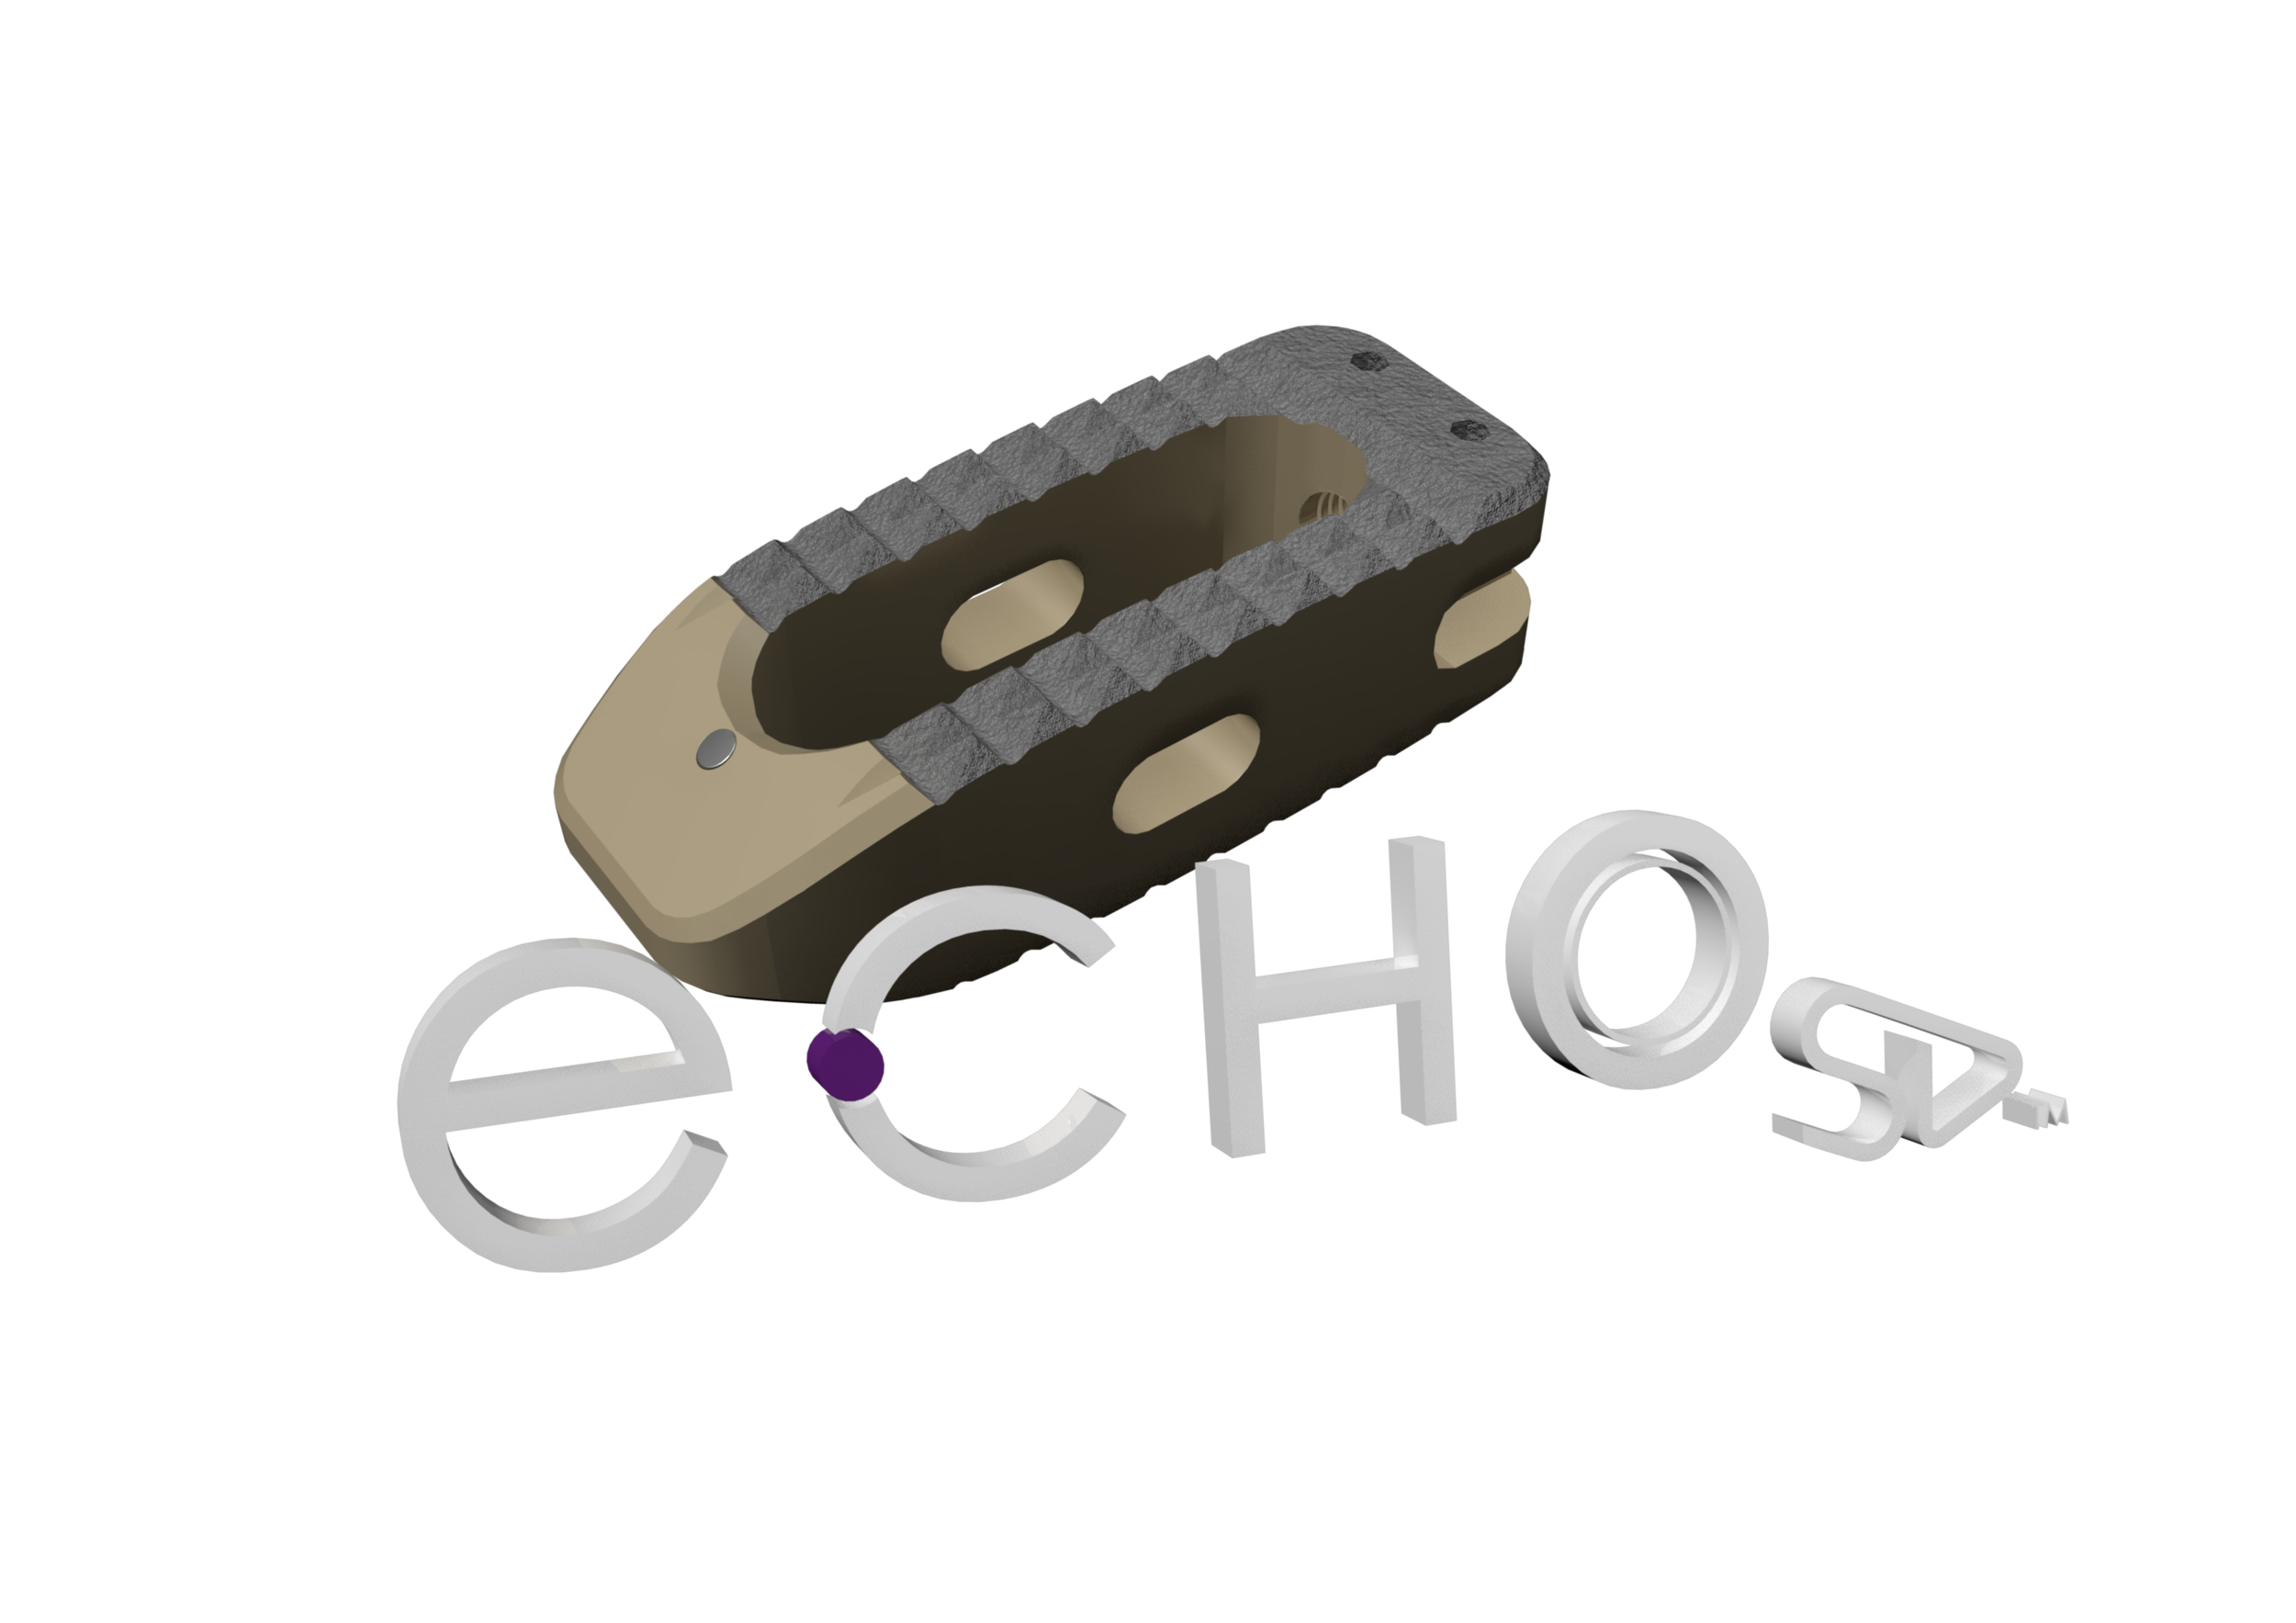 Best_EchoSD_iCon.png